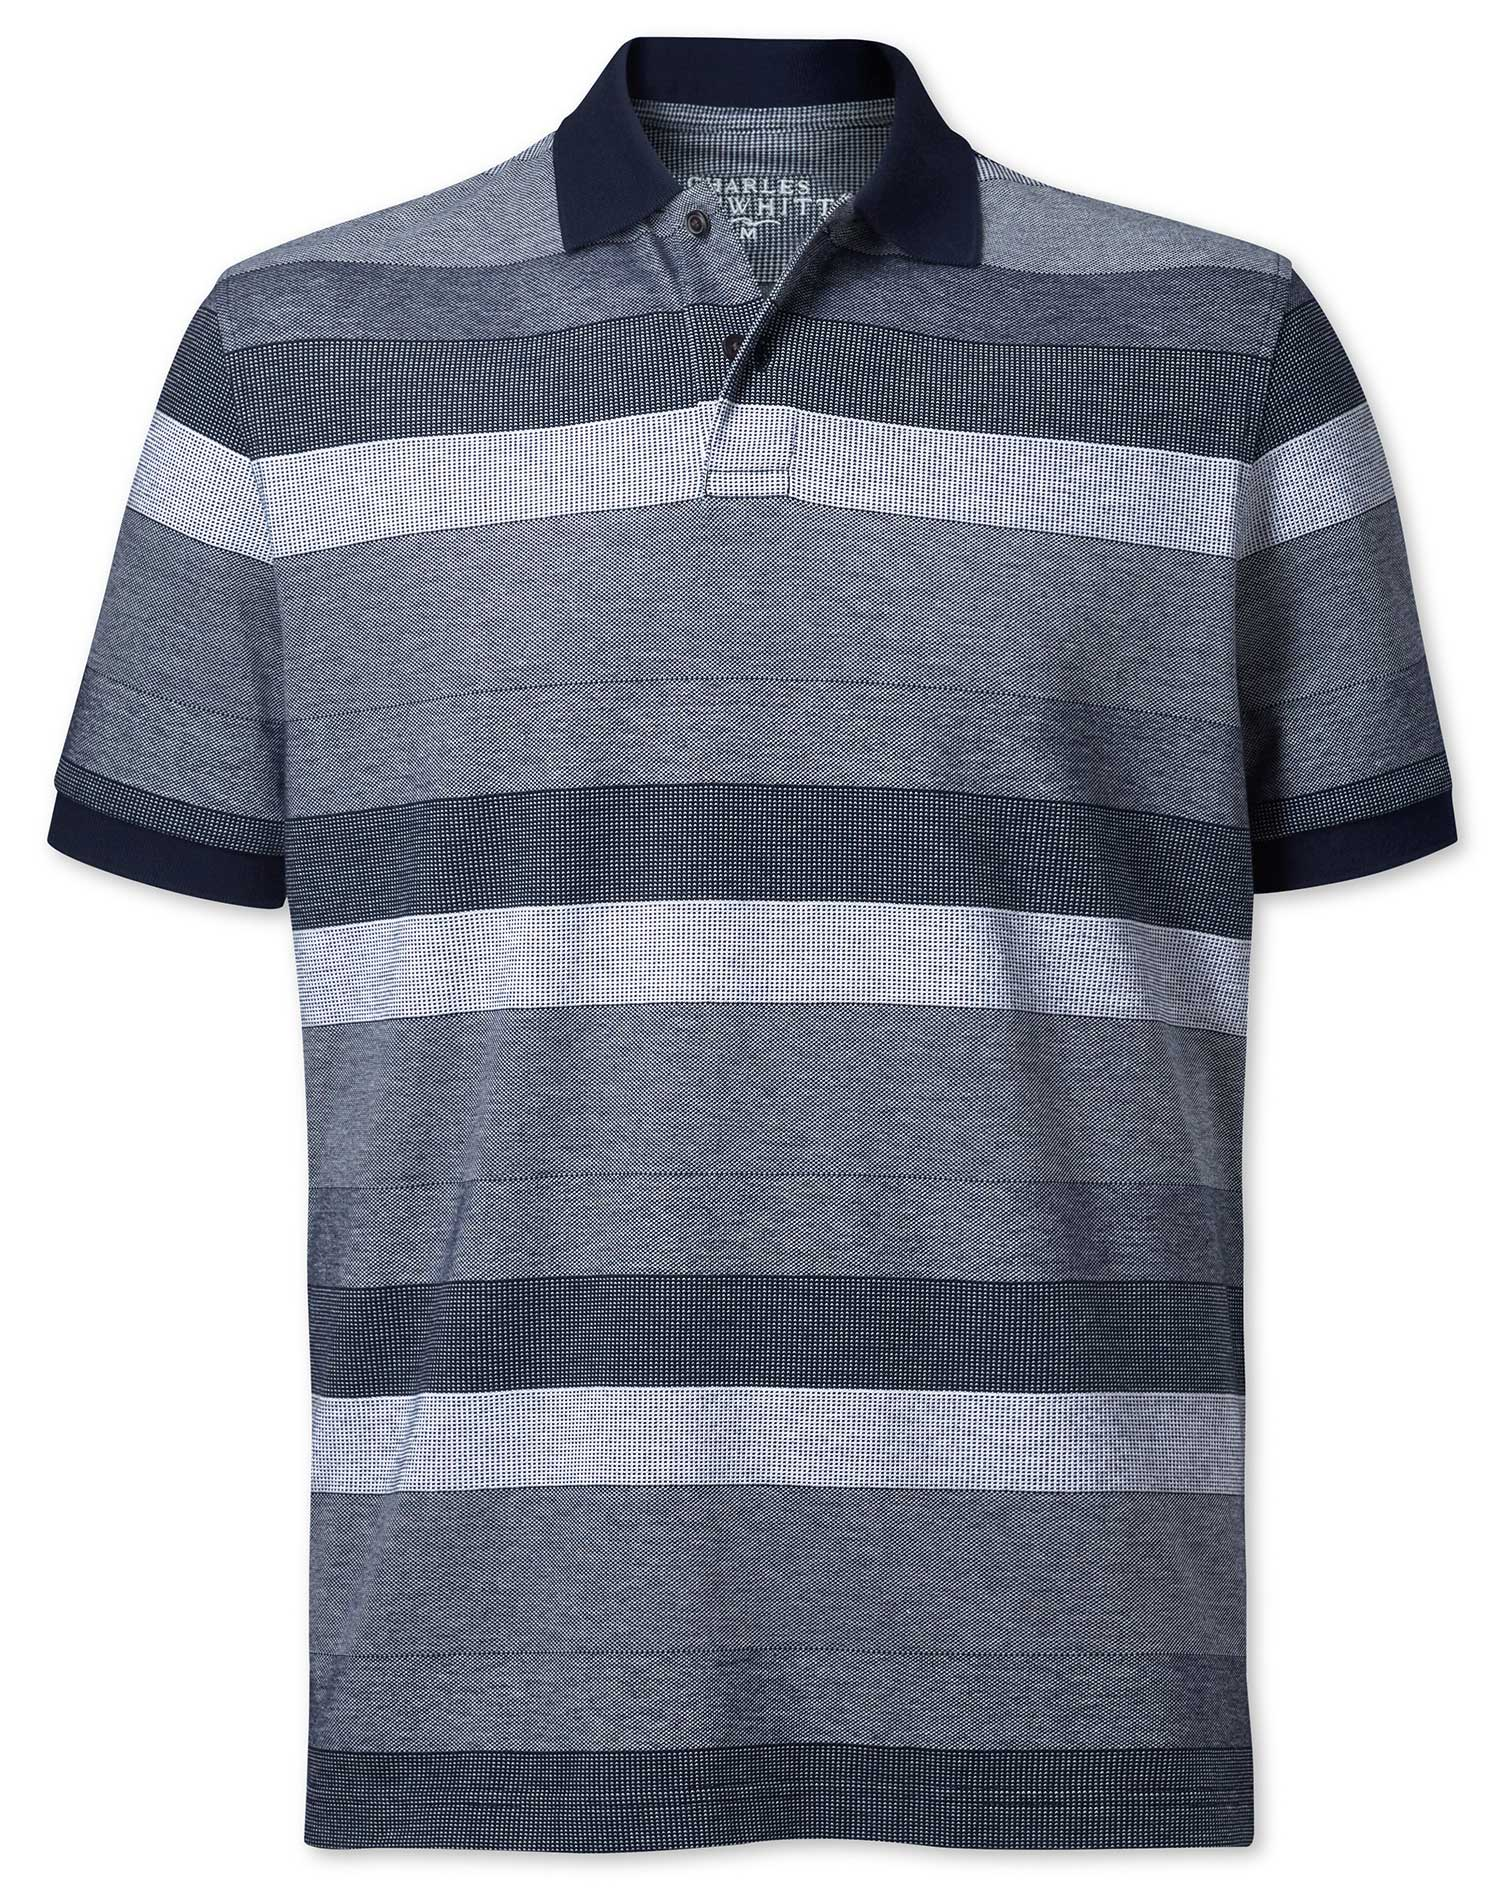 Navy and White Textured Stripe Cotton Polo Size XS by Charles Tyrwhitt